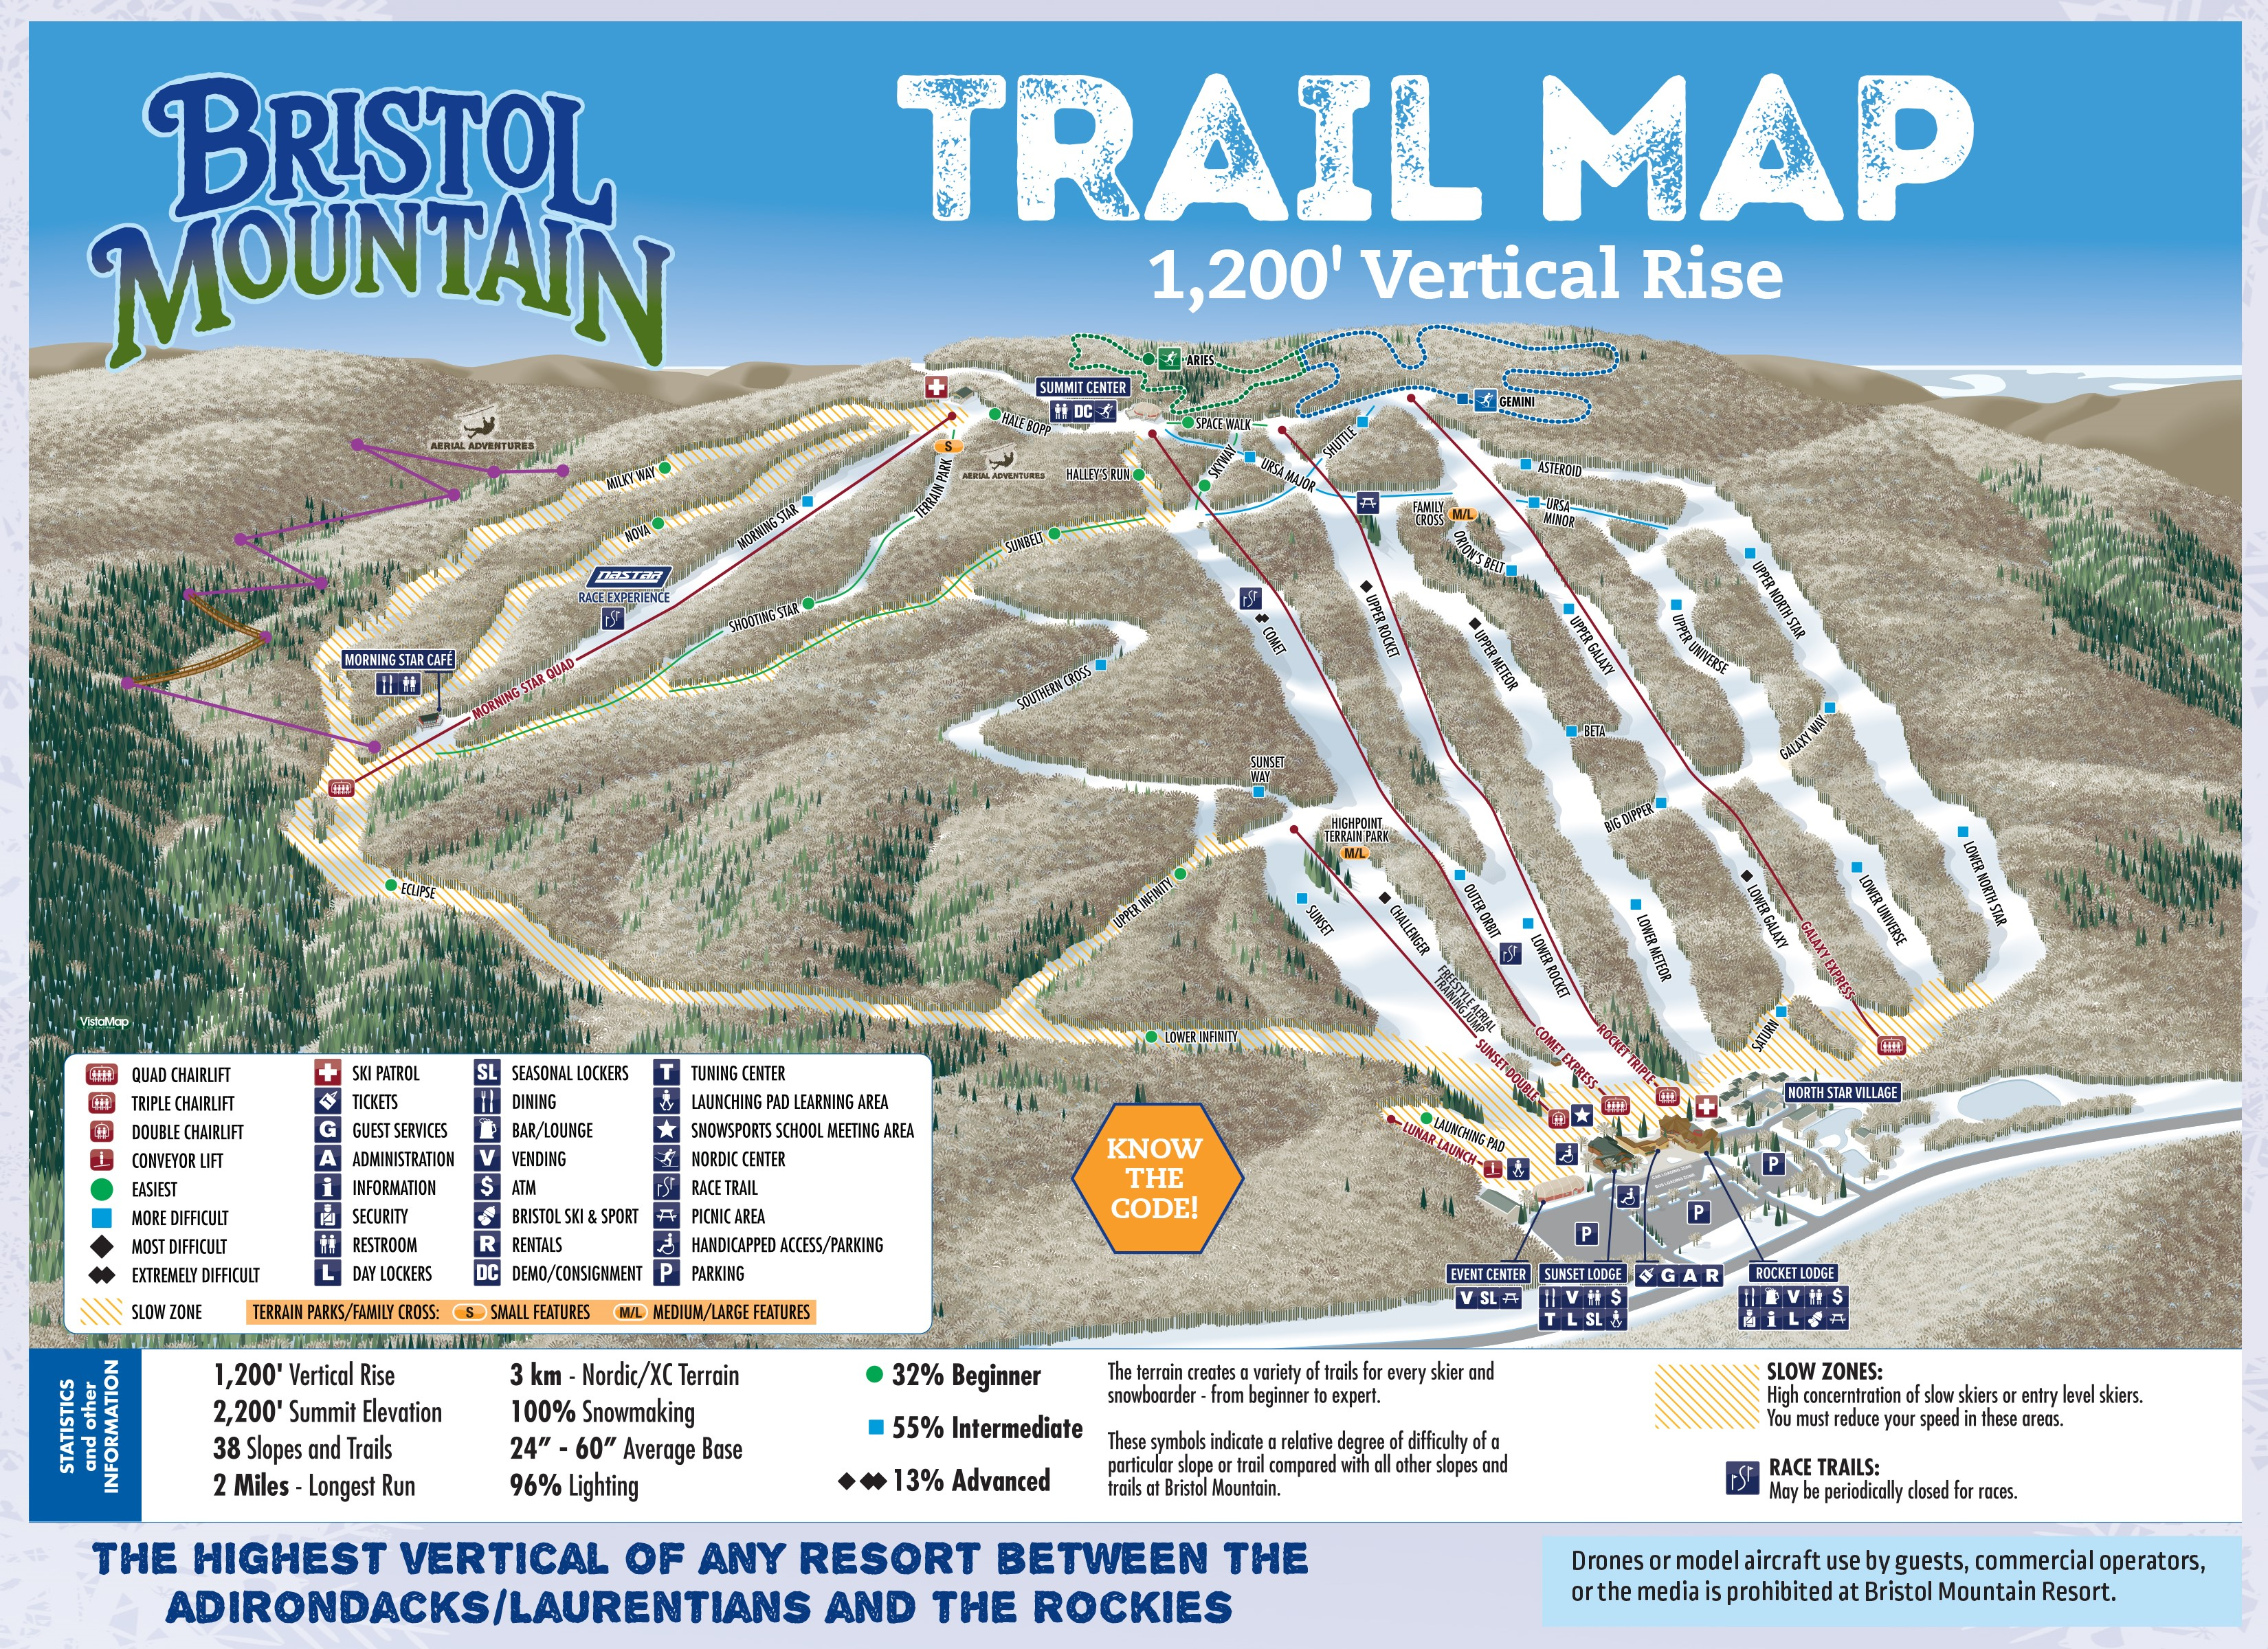 Bristol Mountain Trail Map 2018-19 - Please Call (585) 374-6000 for a verbal description of our trail offerings.